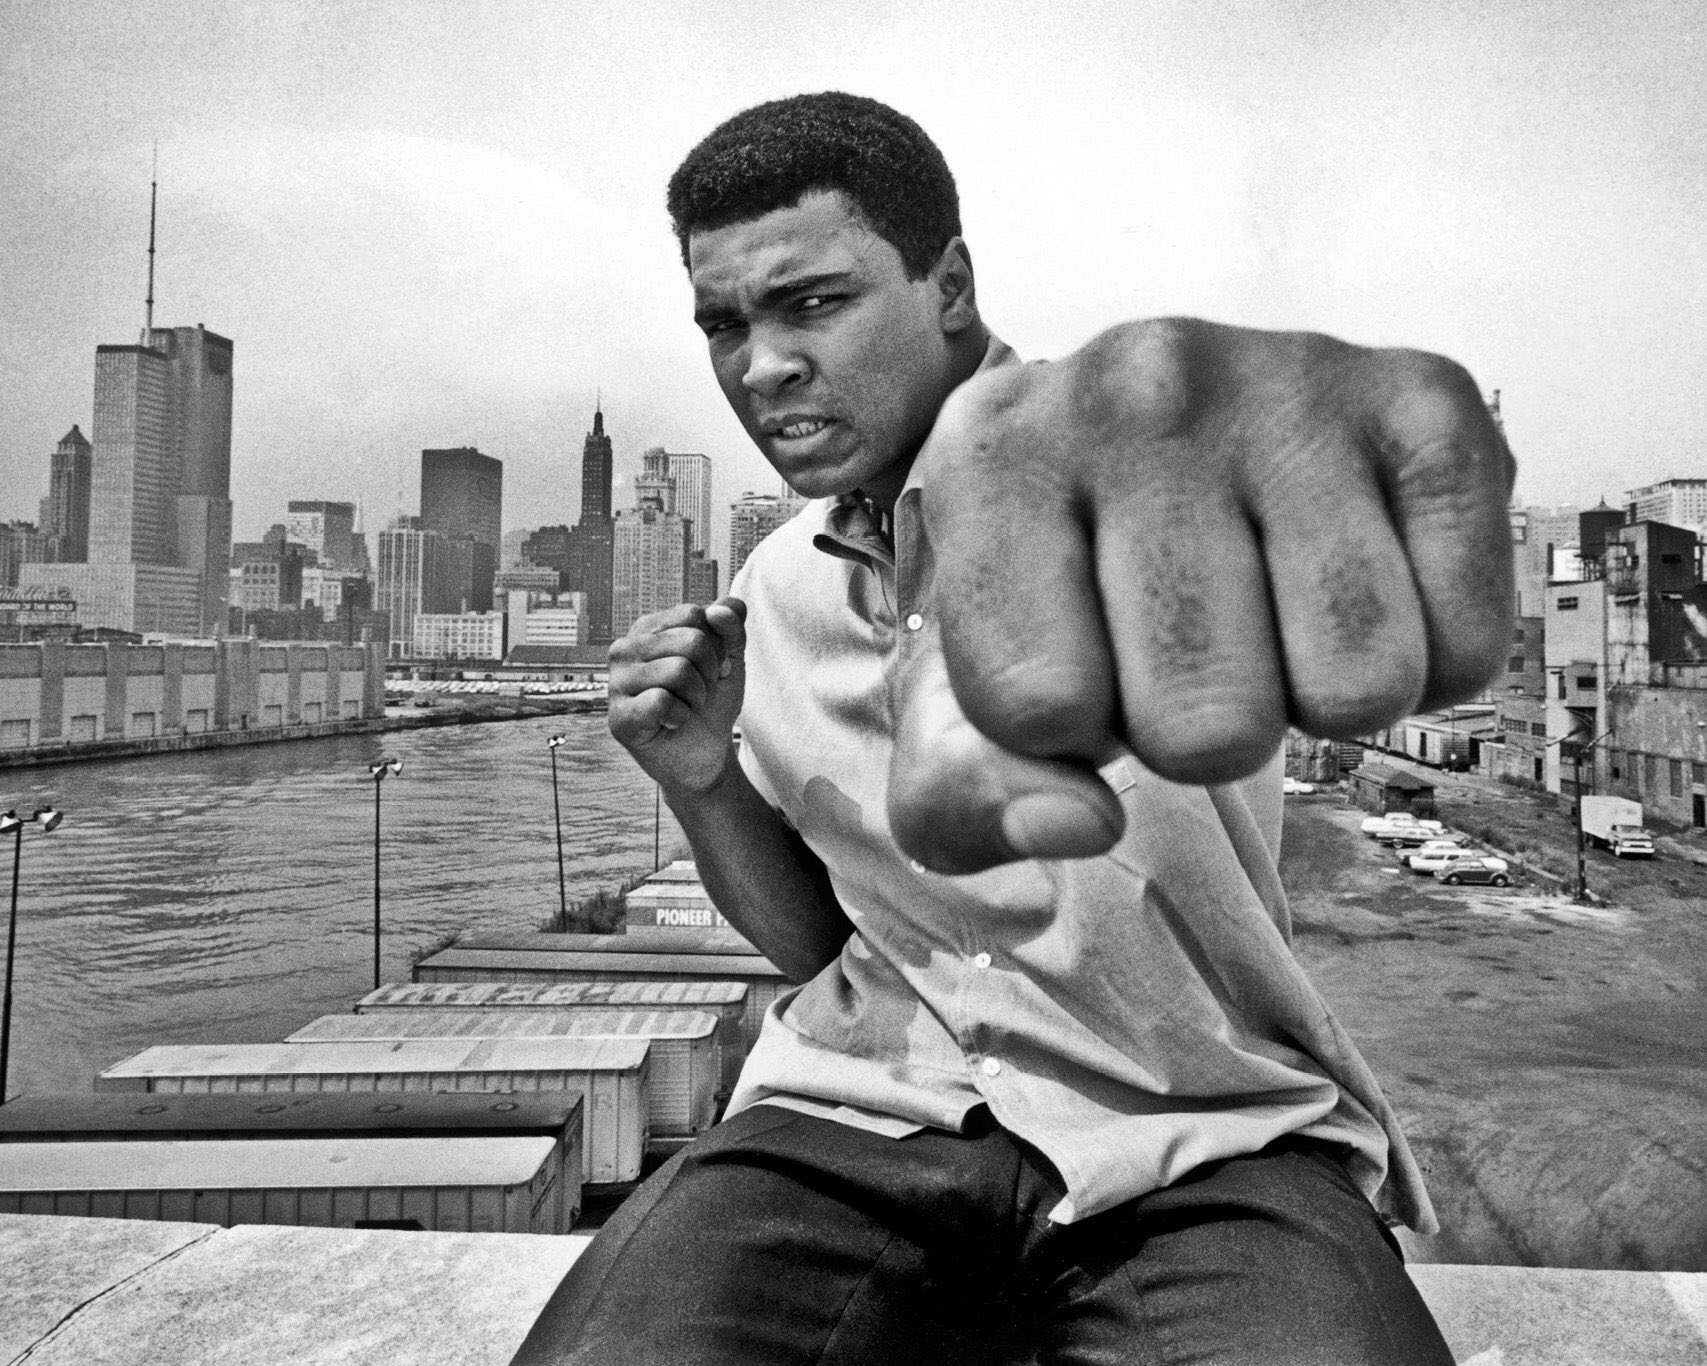 RIP to Muhammad Ali... More than just a sportsman.. An inspiration to millions in many ways! https://t.co/rLSbulkcwx https://t.co/6FSgqHWnMs